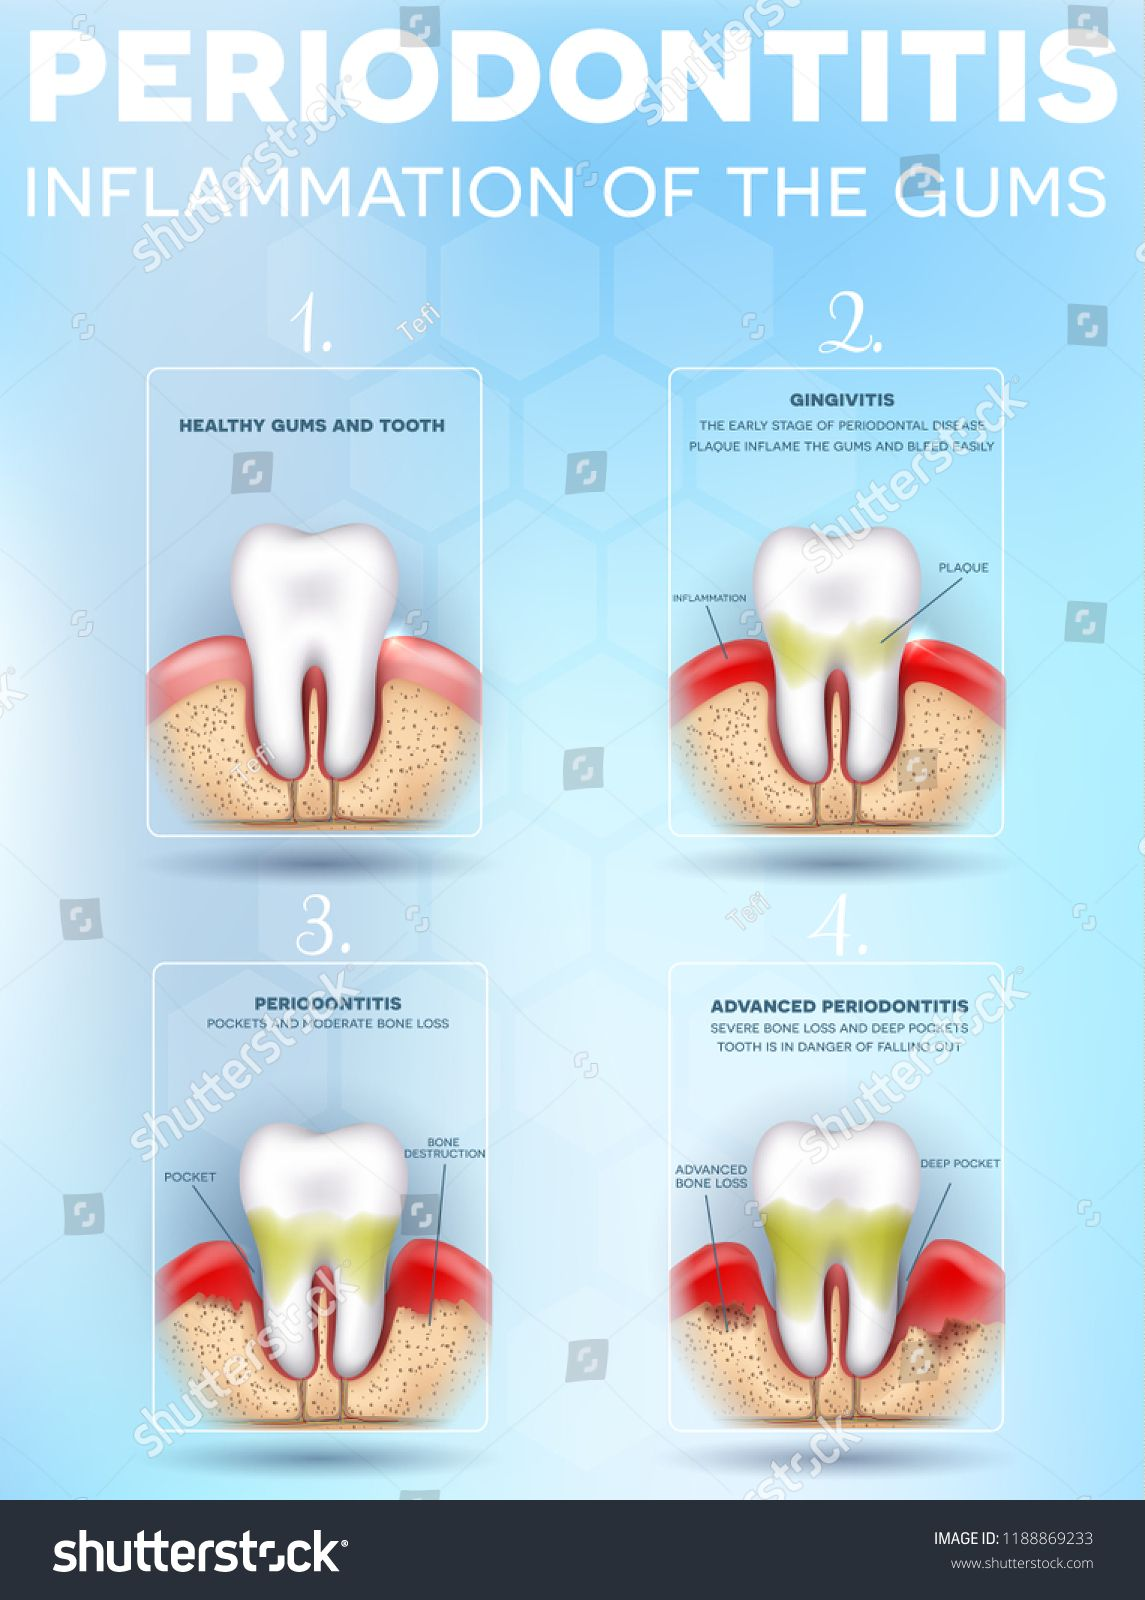 healthy tooth gingivitis and at the end advanced periodontitis medical poster diagram gingivitis periodontitis tooth teeth dental dentistry caries  [ 1145 x 1600 Pixel ]